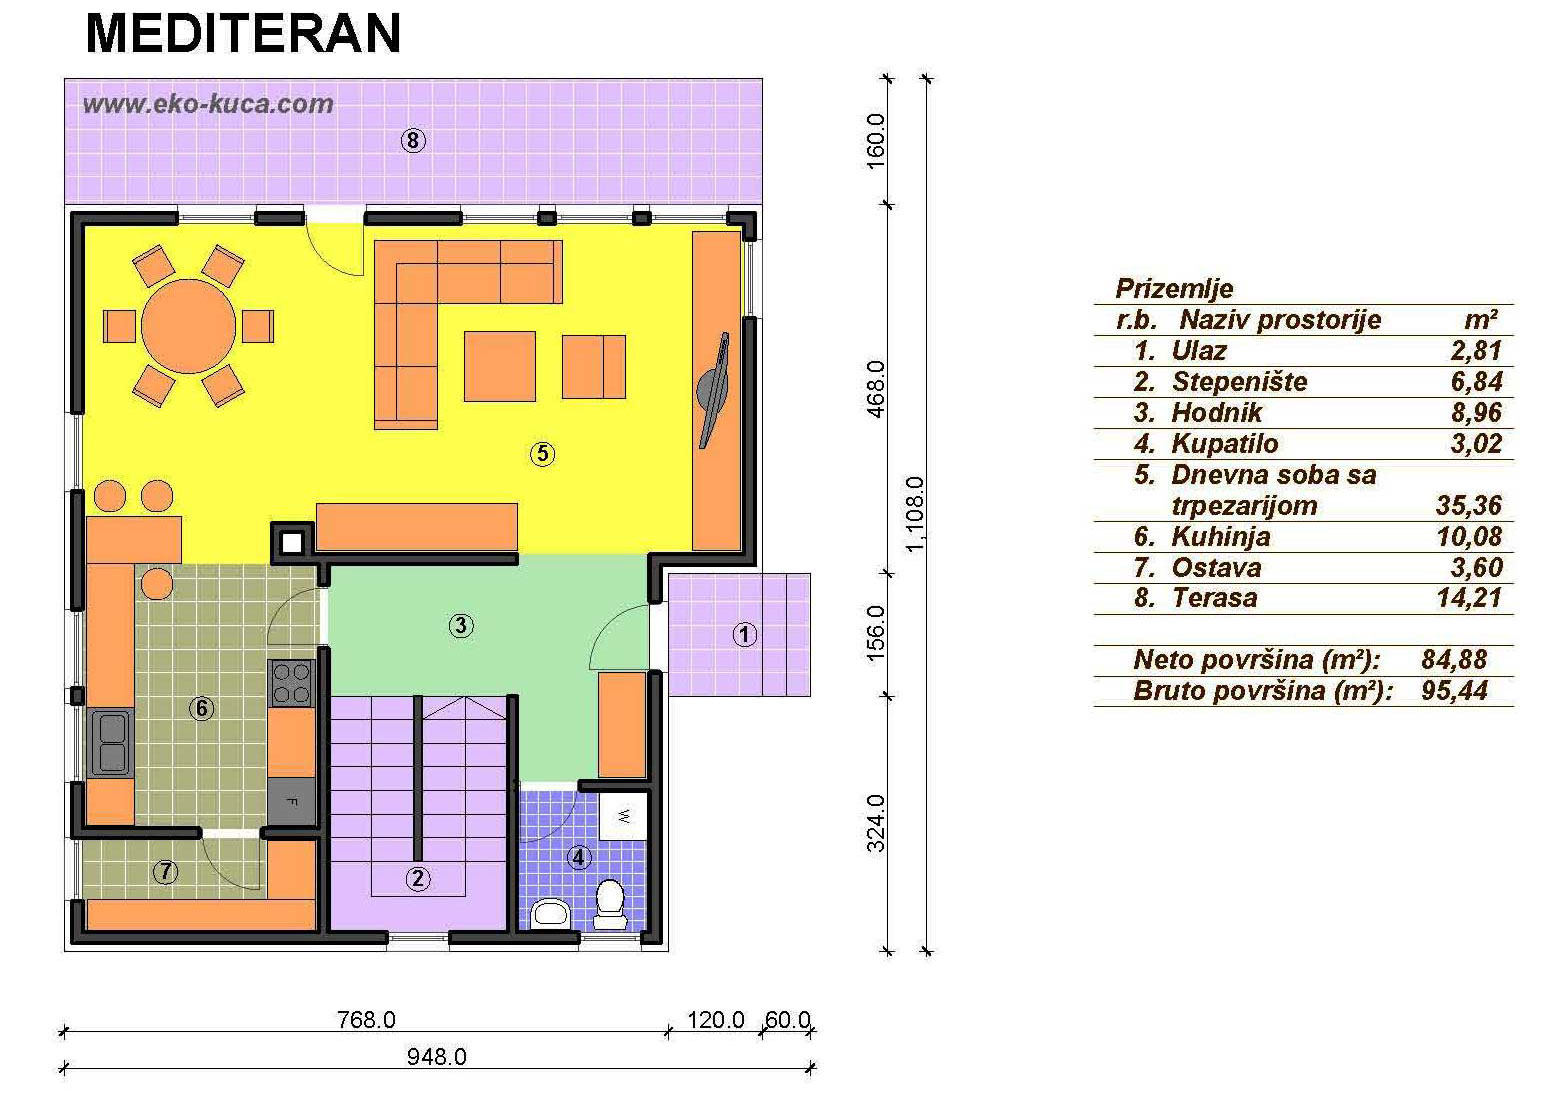 Prefabricated houses - Mediteran - Ground floor